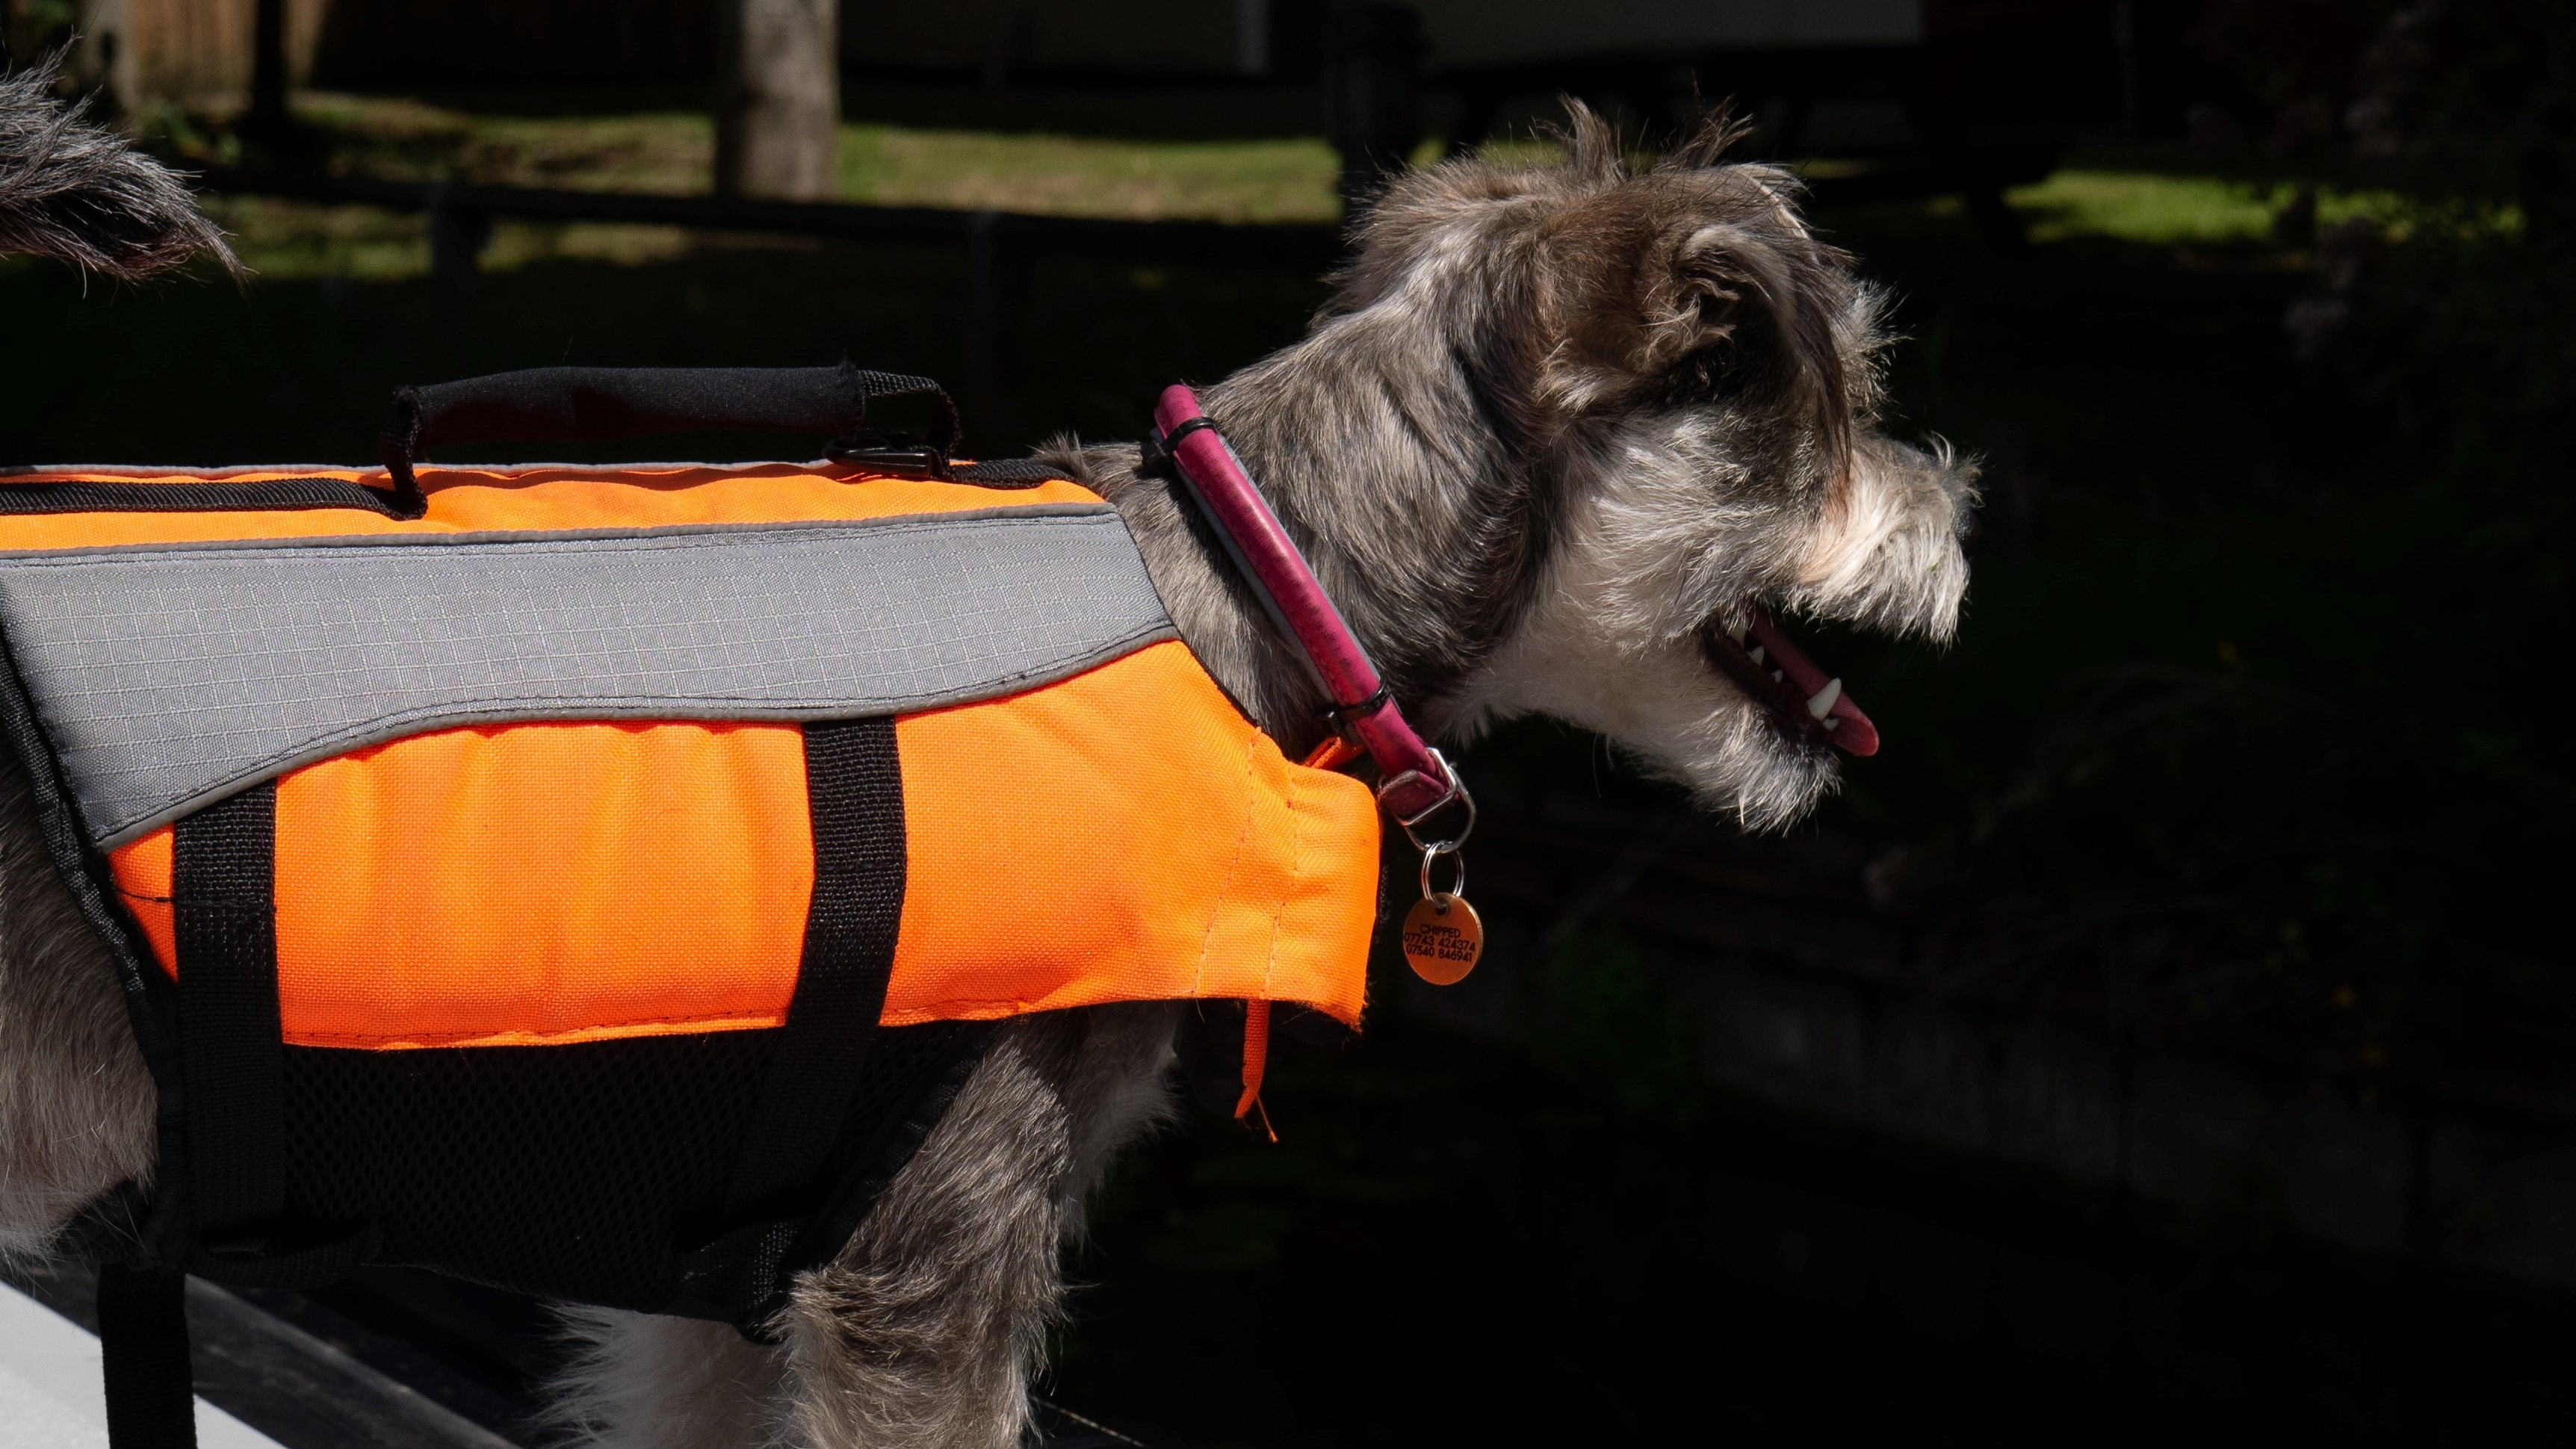 Dog with life jacket ready for paddle boarding